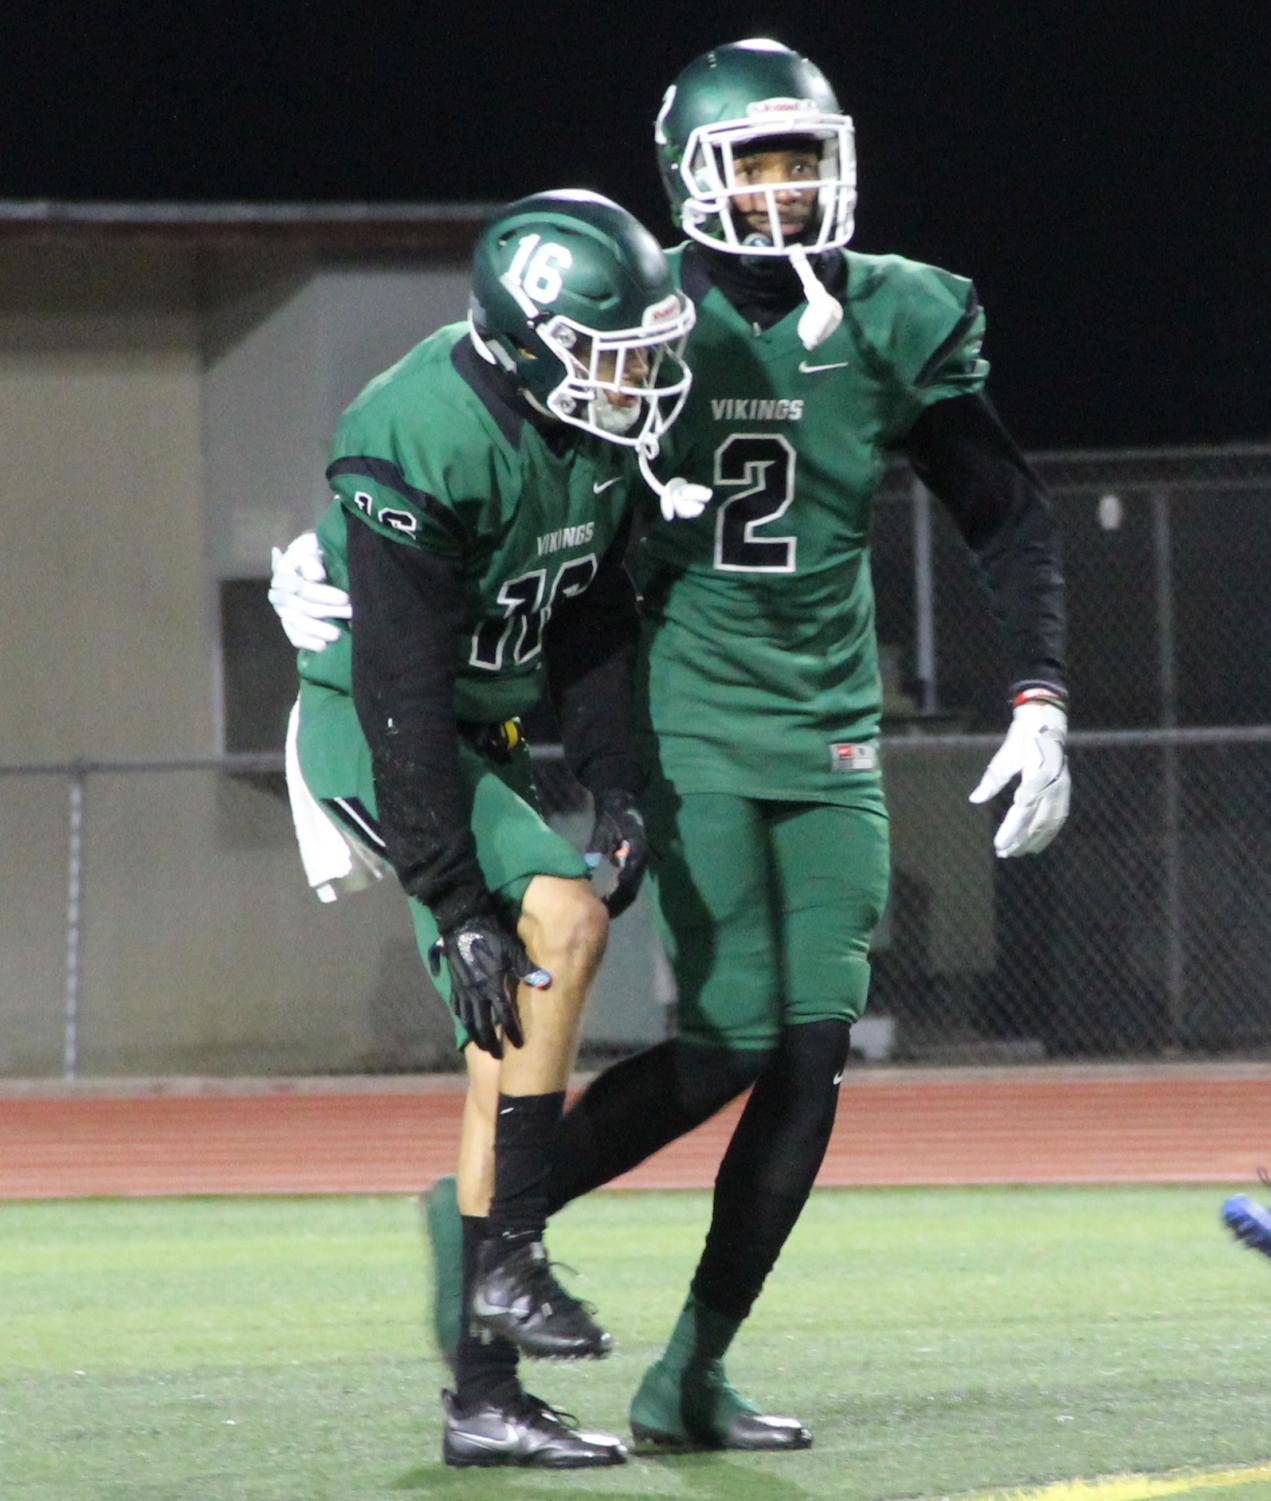 Wide receivers Brandon Perrilliat (left) and Antwuin Prowes (right) walk back to the sideline in their game against College of San Mateo at Diablo Valley College in Pleasant Hill, California on November 10, 2017.